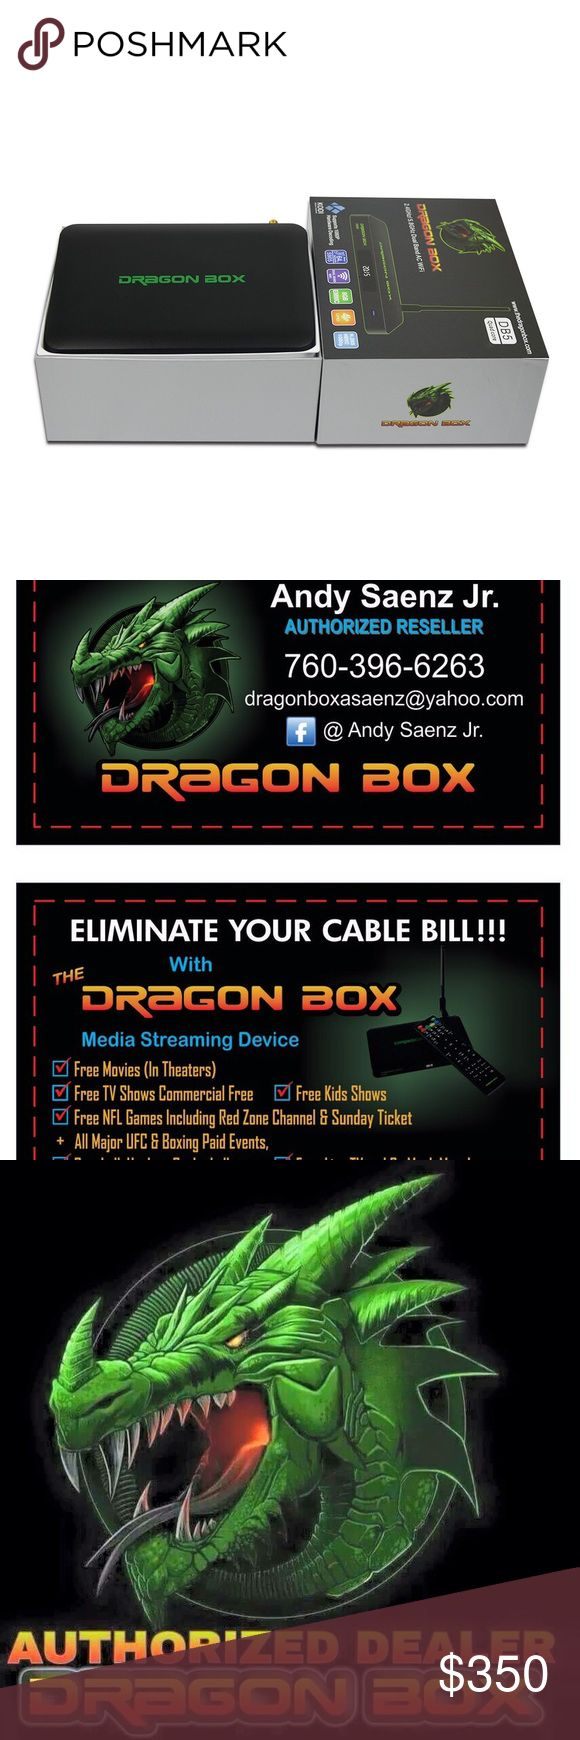 Dragon Box With this box you get all Sunday Ticket and Red Zone NFL games, all PPV Fights from Boxing UFC to WWE. You get all Sports channels MLB, NBA, NHL, NASCAR, Soccer you name you get it. You also get all movies and Tv shows, everything and anything on demand. And you get all of this in High Definition 1080 or 720 and the box is also 4K compatible. And you get Live Tv major network channels Other